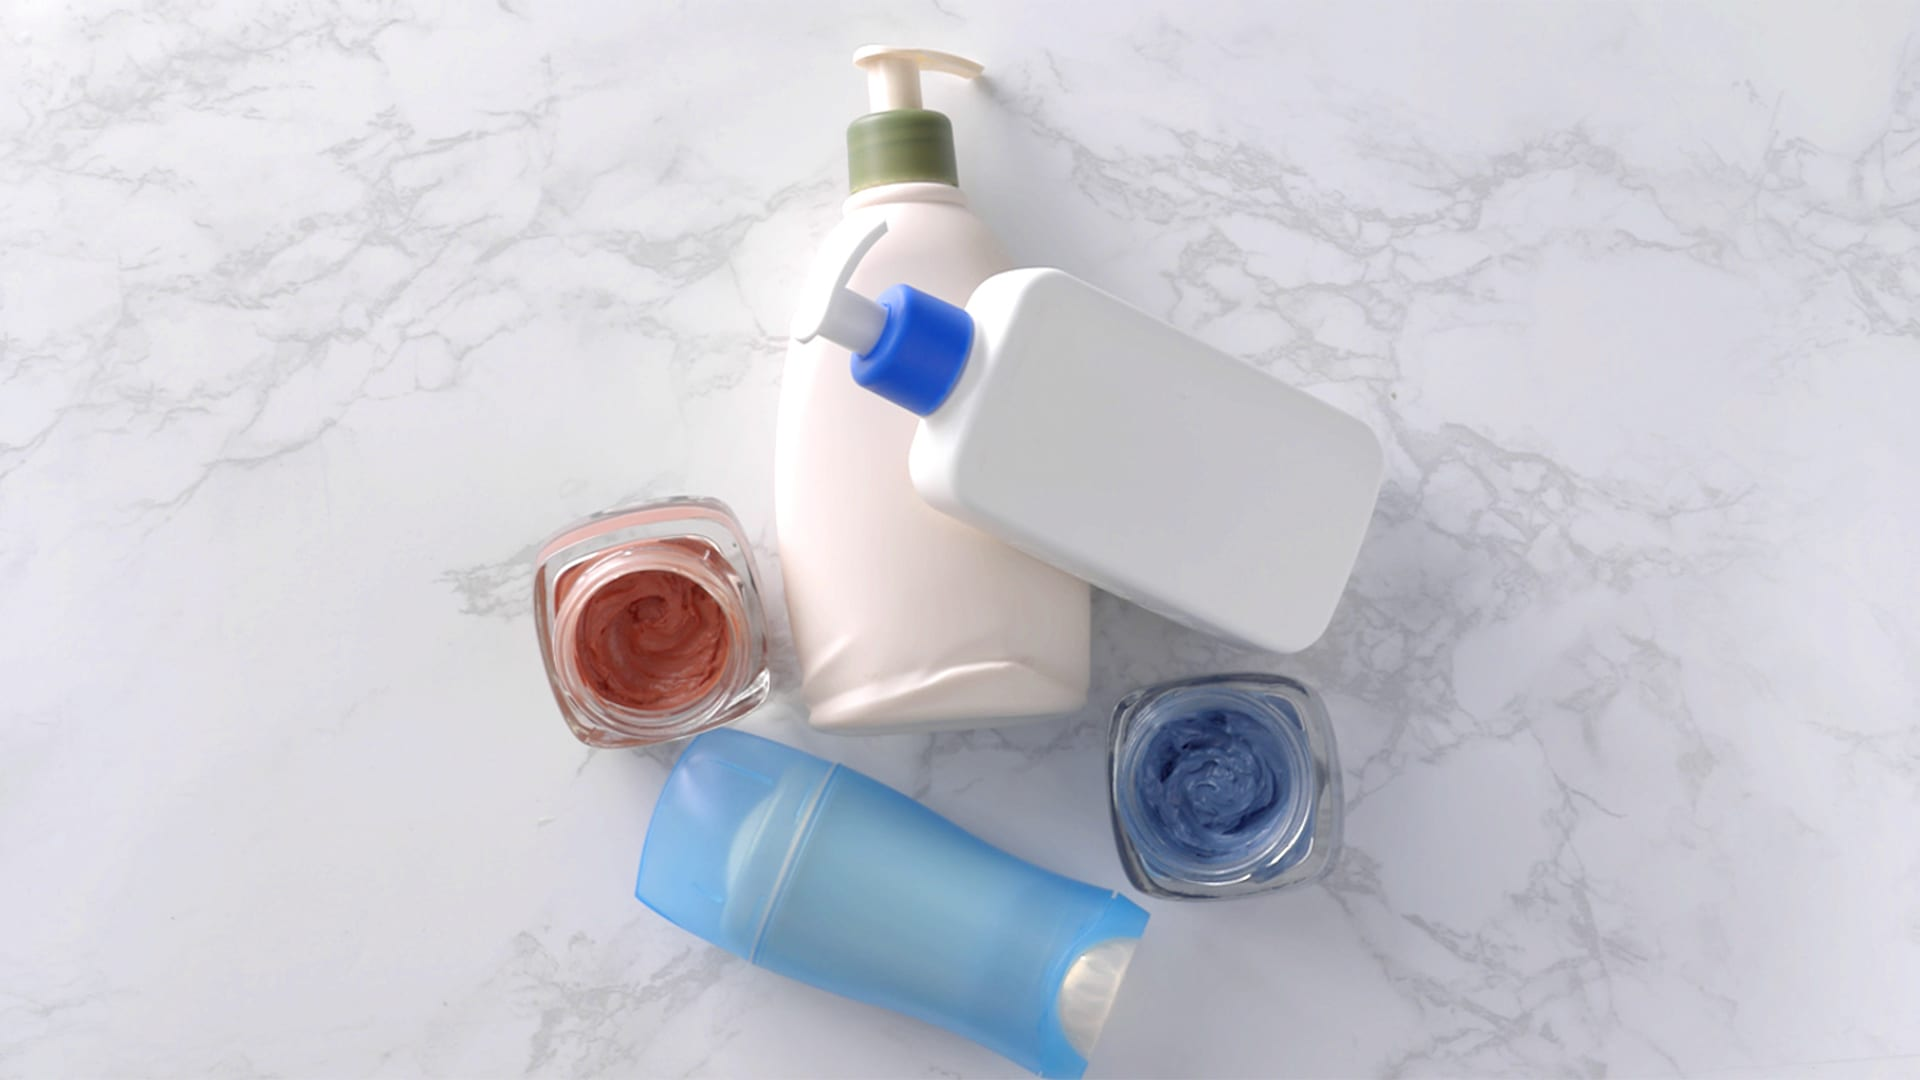 Conventional personal care products